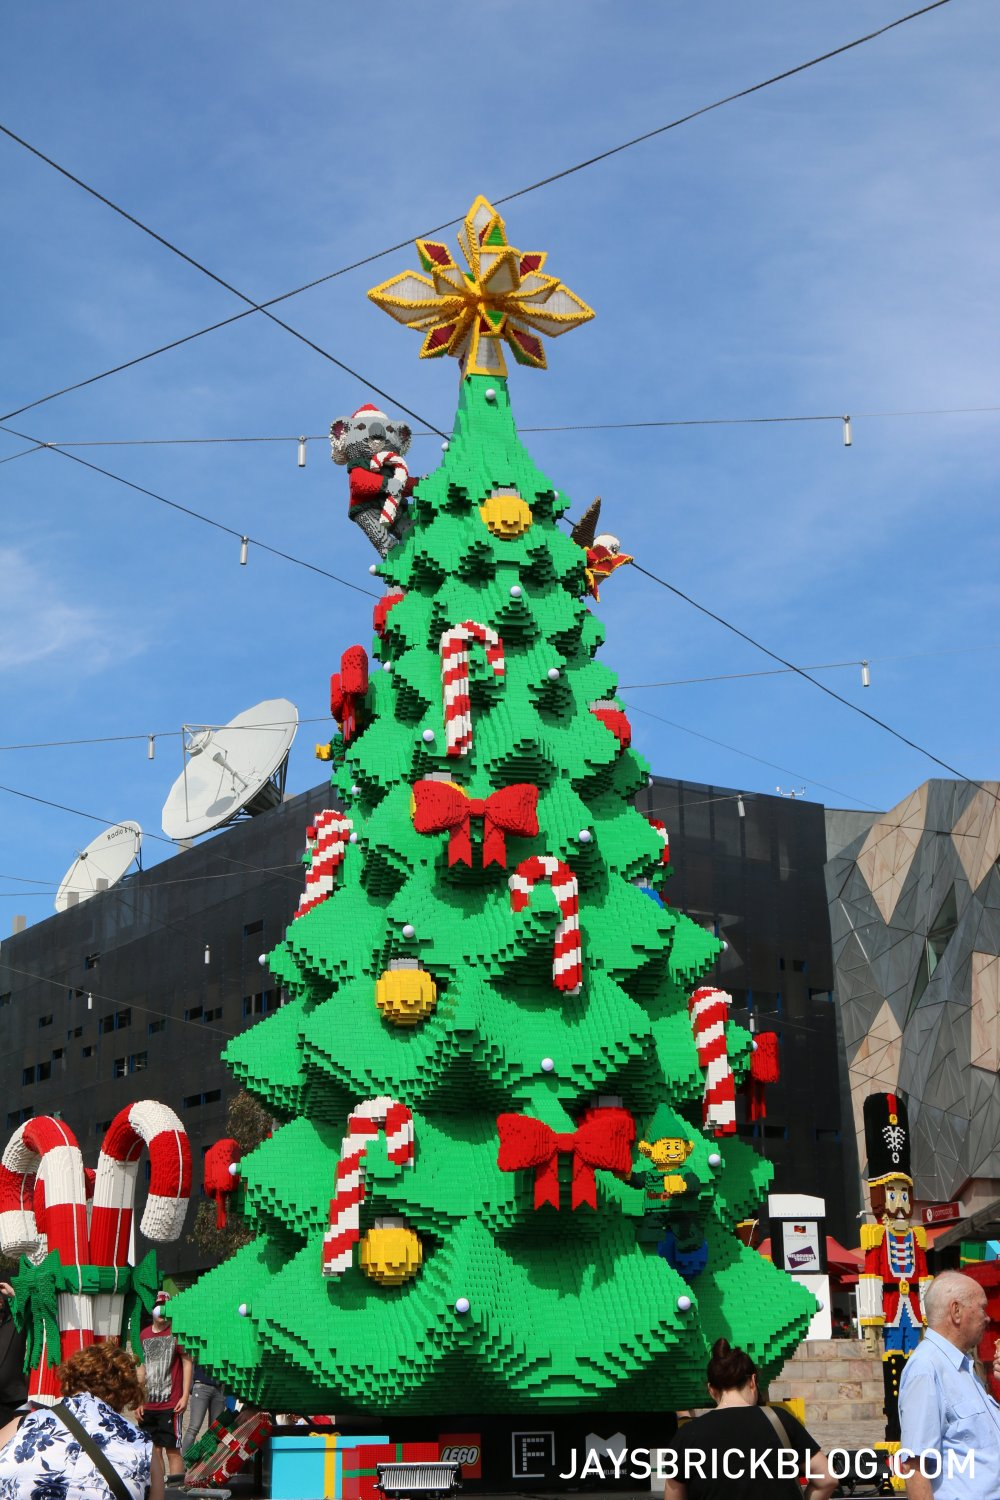 medium resolution of lego christmas tree federation square melbourne tree during the day